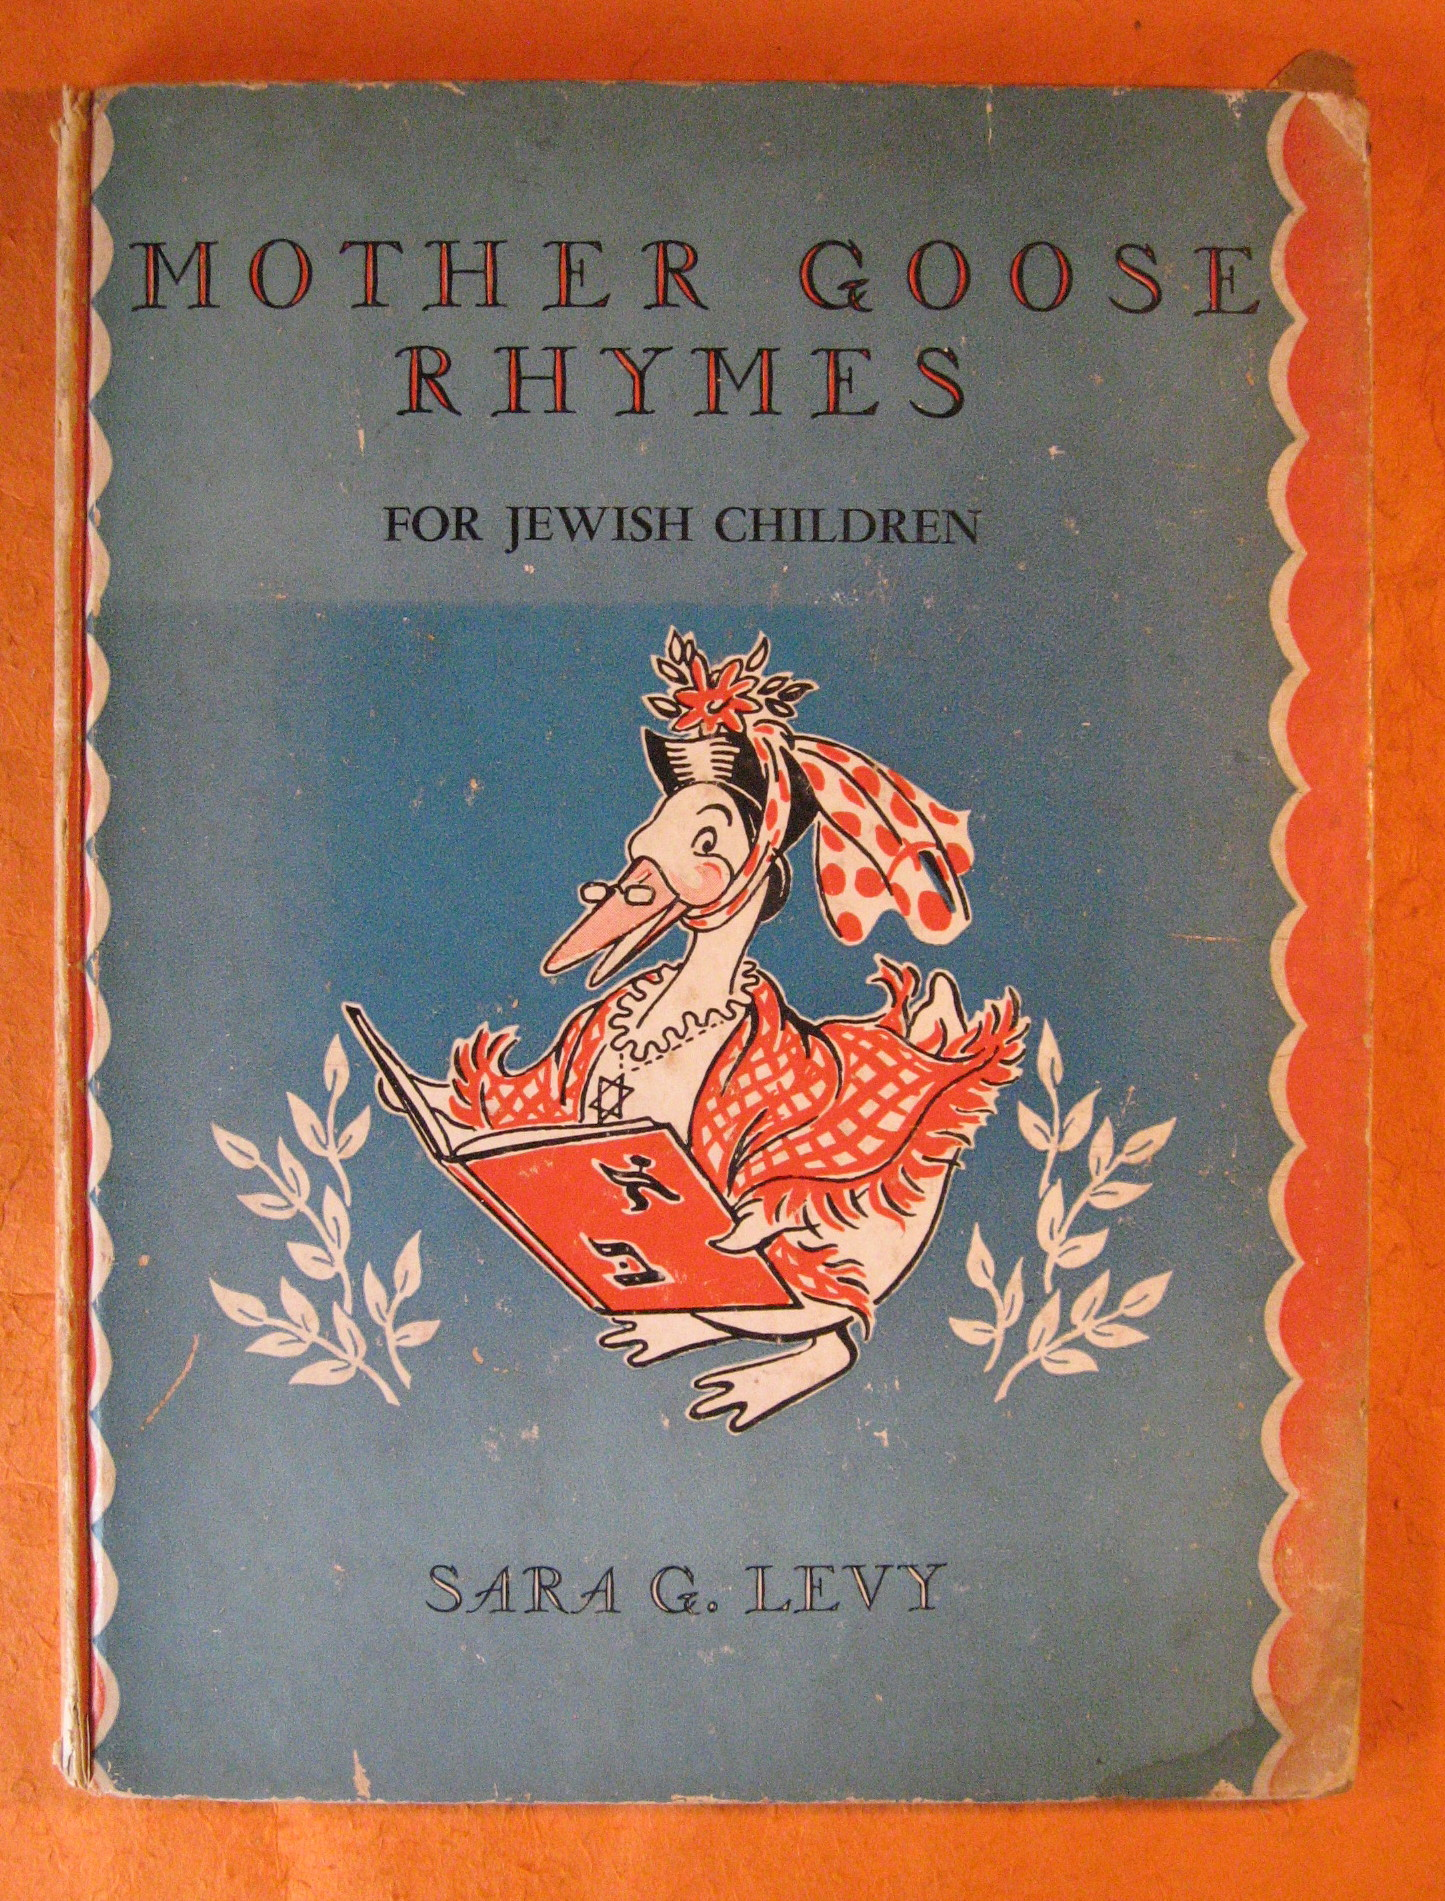 Mother Goose Rhymes for Jewish Children, Levy, Sara G.